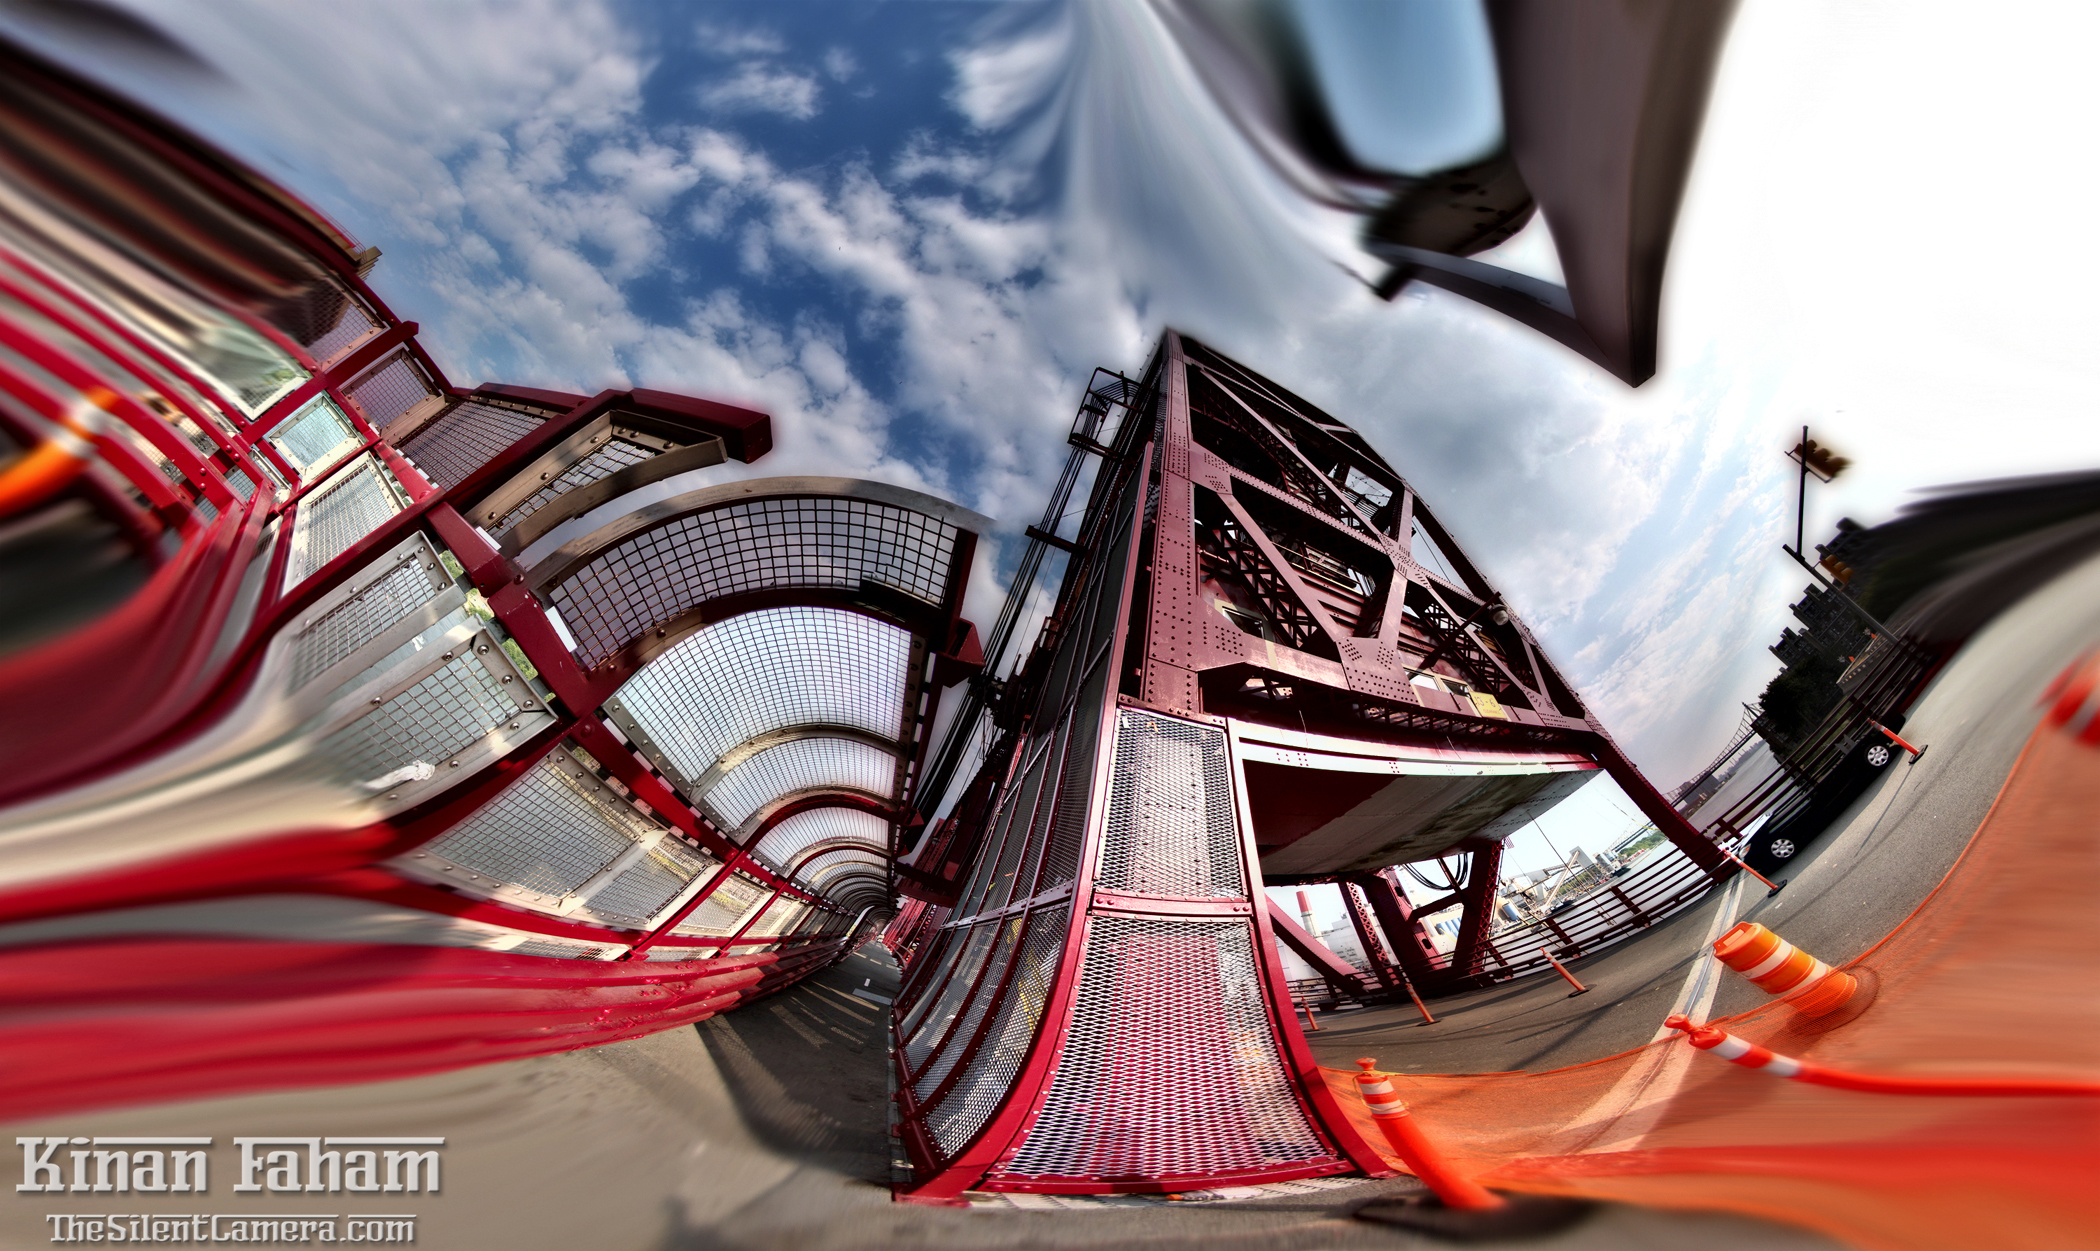 Roosevelt Island bridge. This panorama had around 130 frames stitched to give this fisheye look and feel.